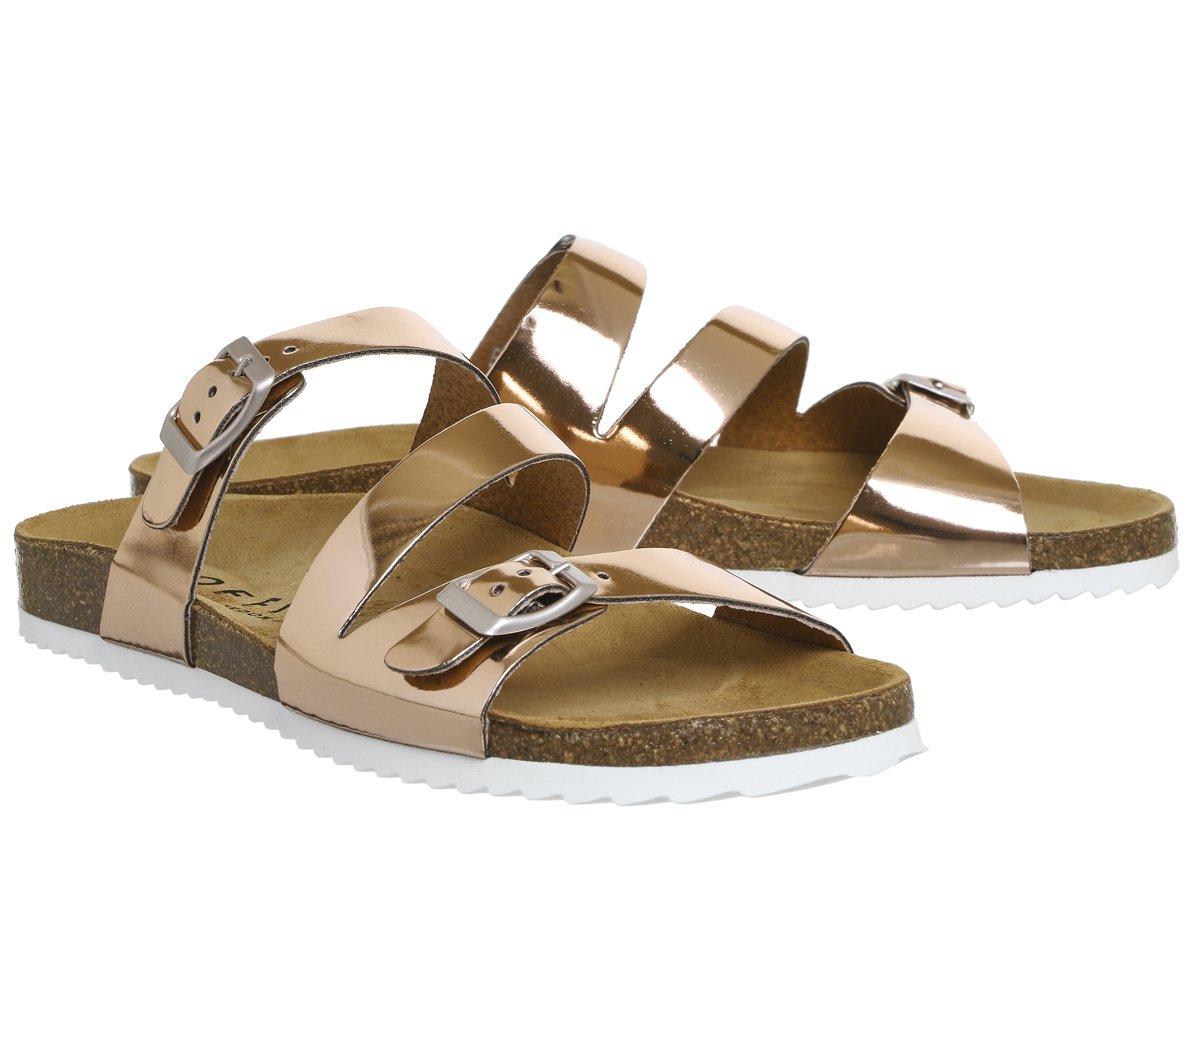 f688995e24d8 Womens OFFICE Bounty Cross Strap Footbed Rose Gold Sandals UK 3 for ...